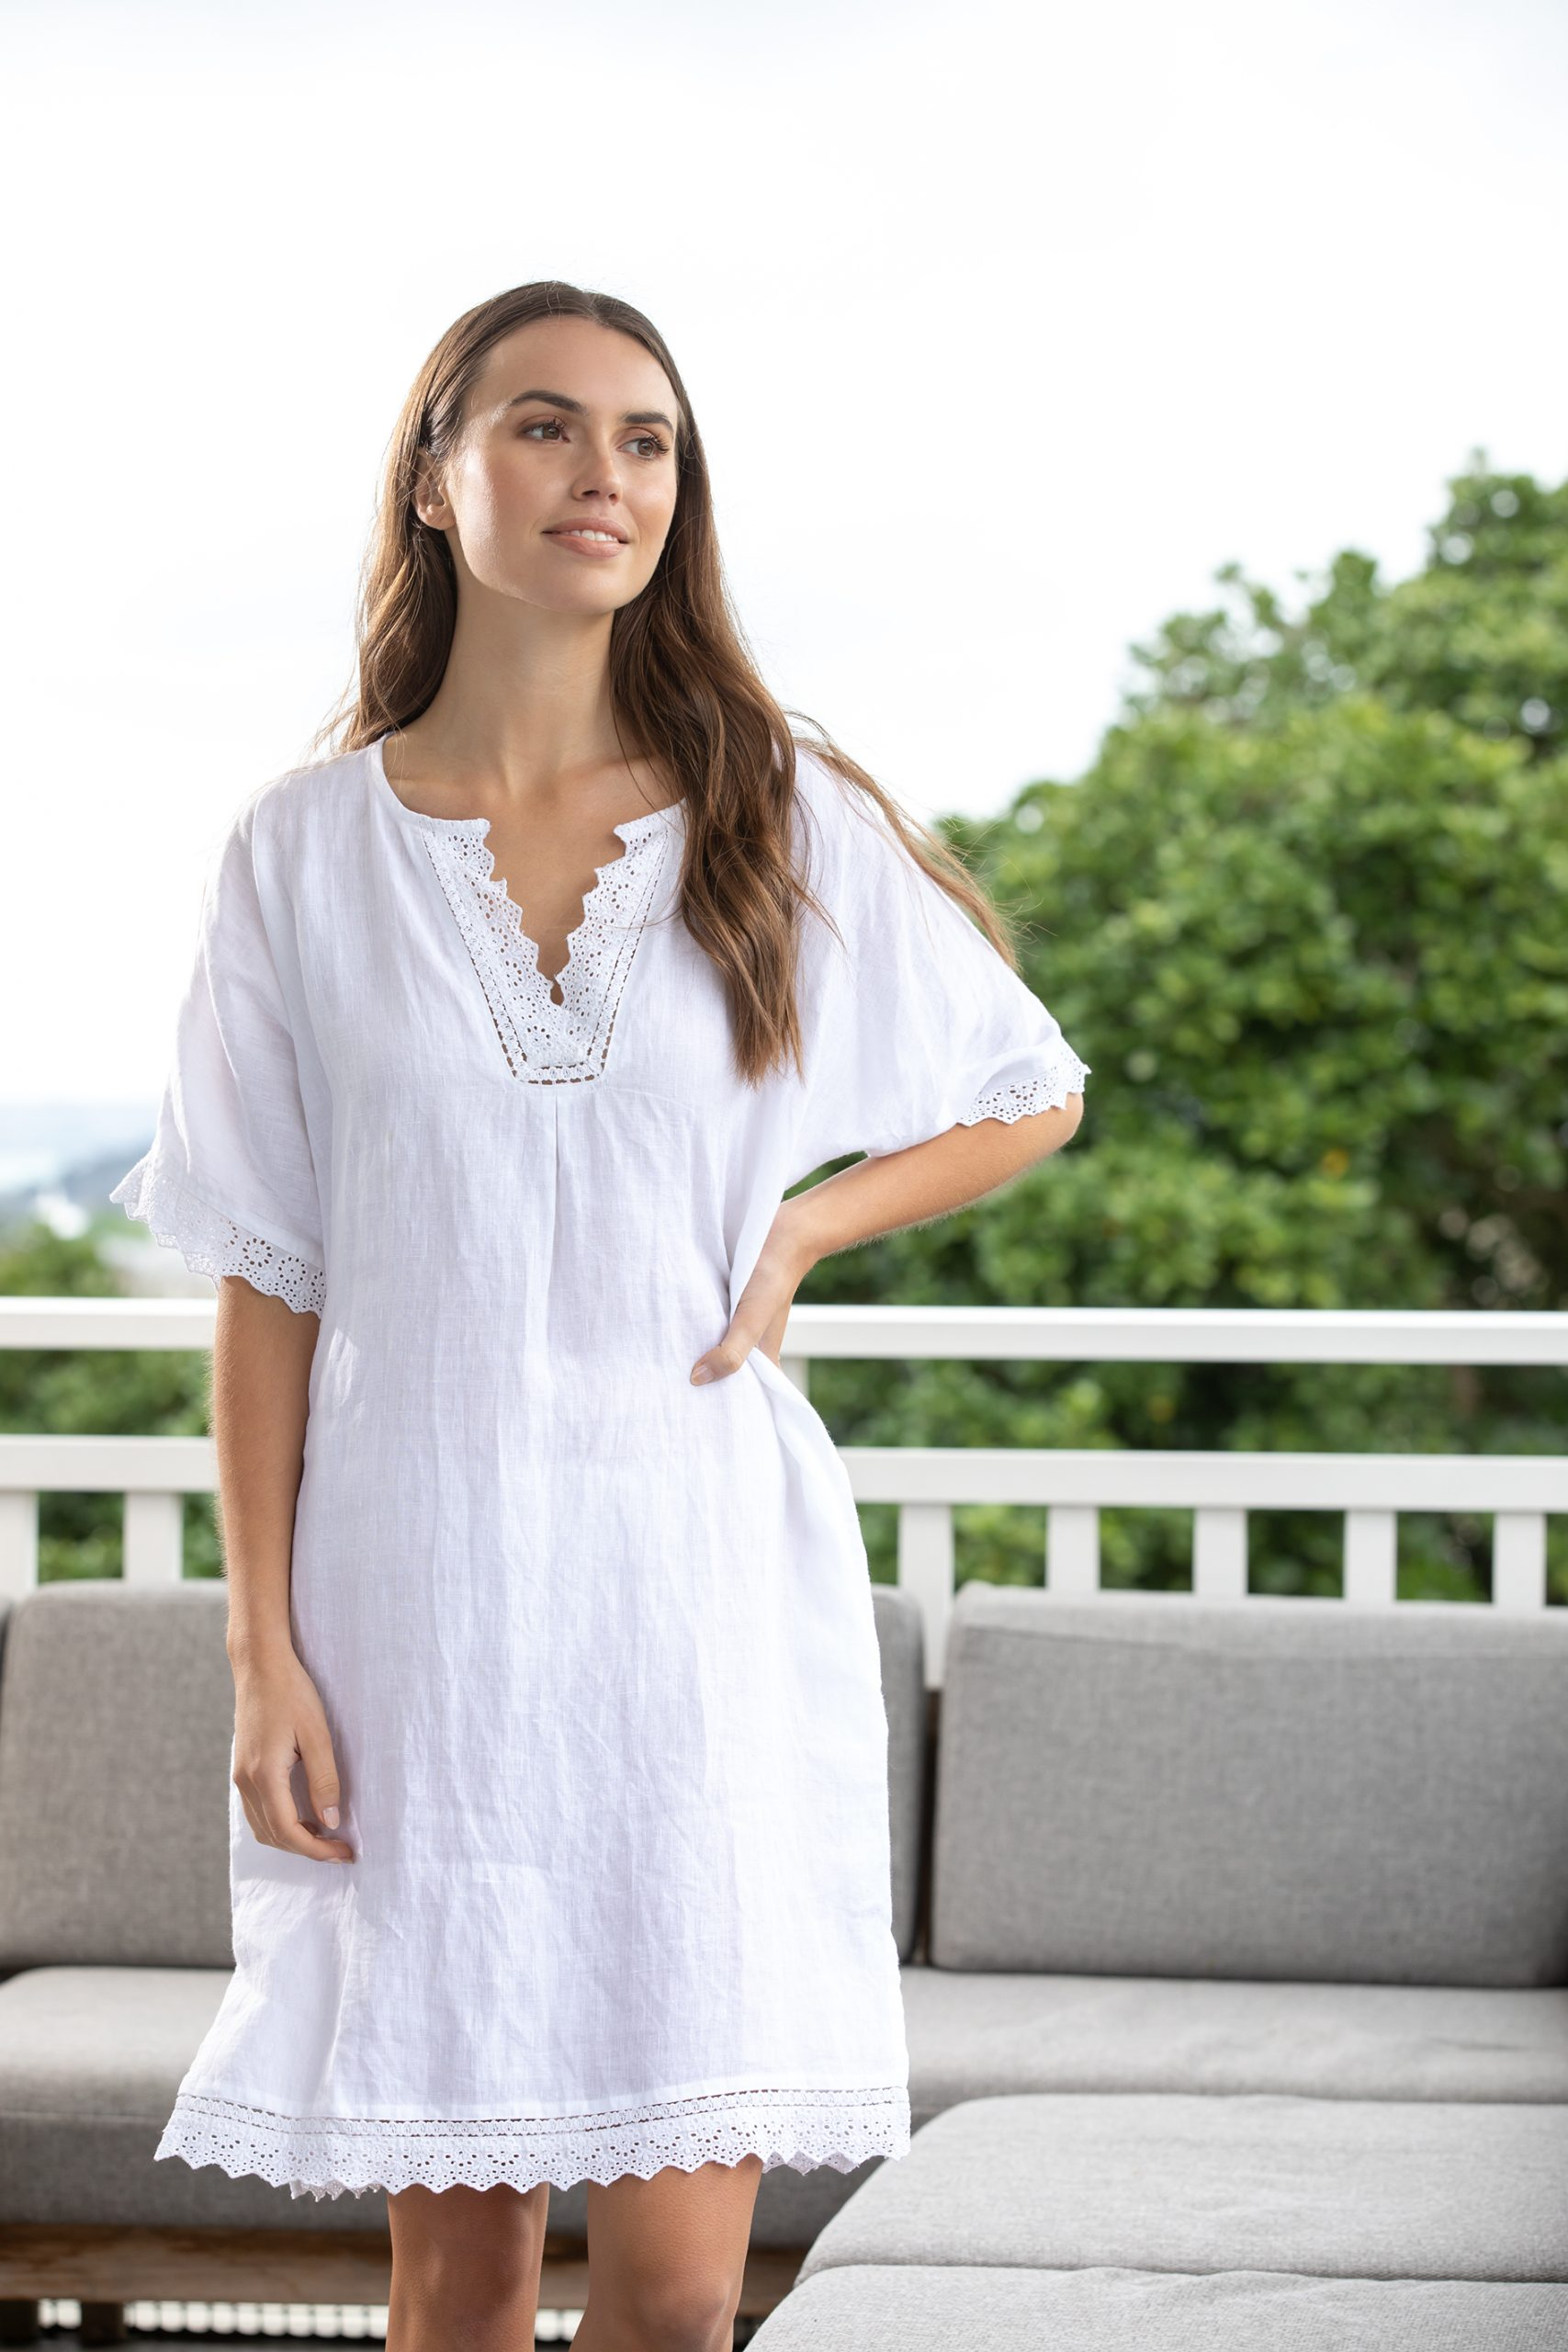 Wallace Cotton Journey Linen Lace Dress White 3 $119.90